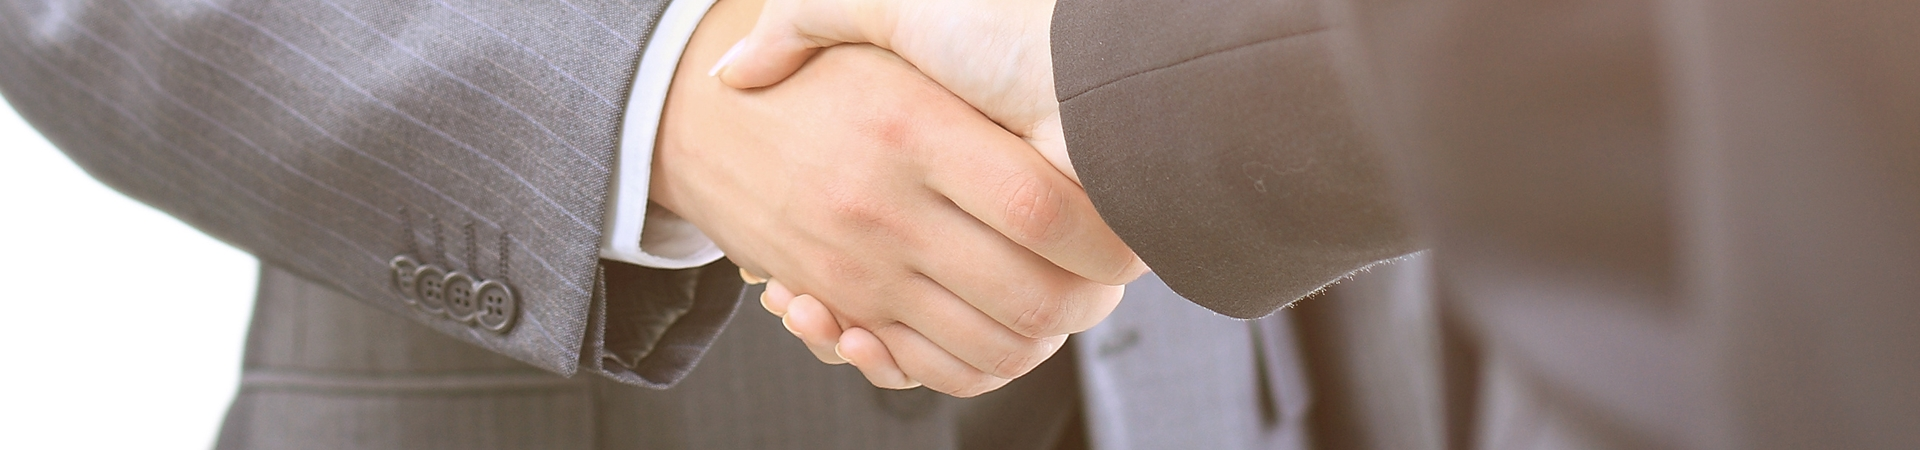 Handshake of the two businessmen, agreed in the contract.